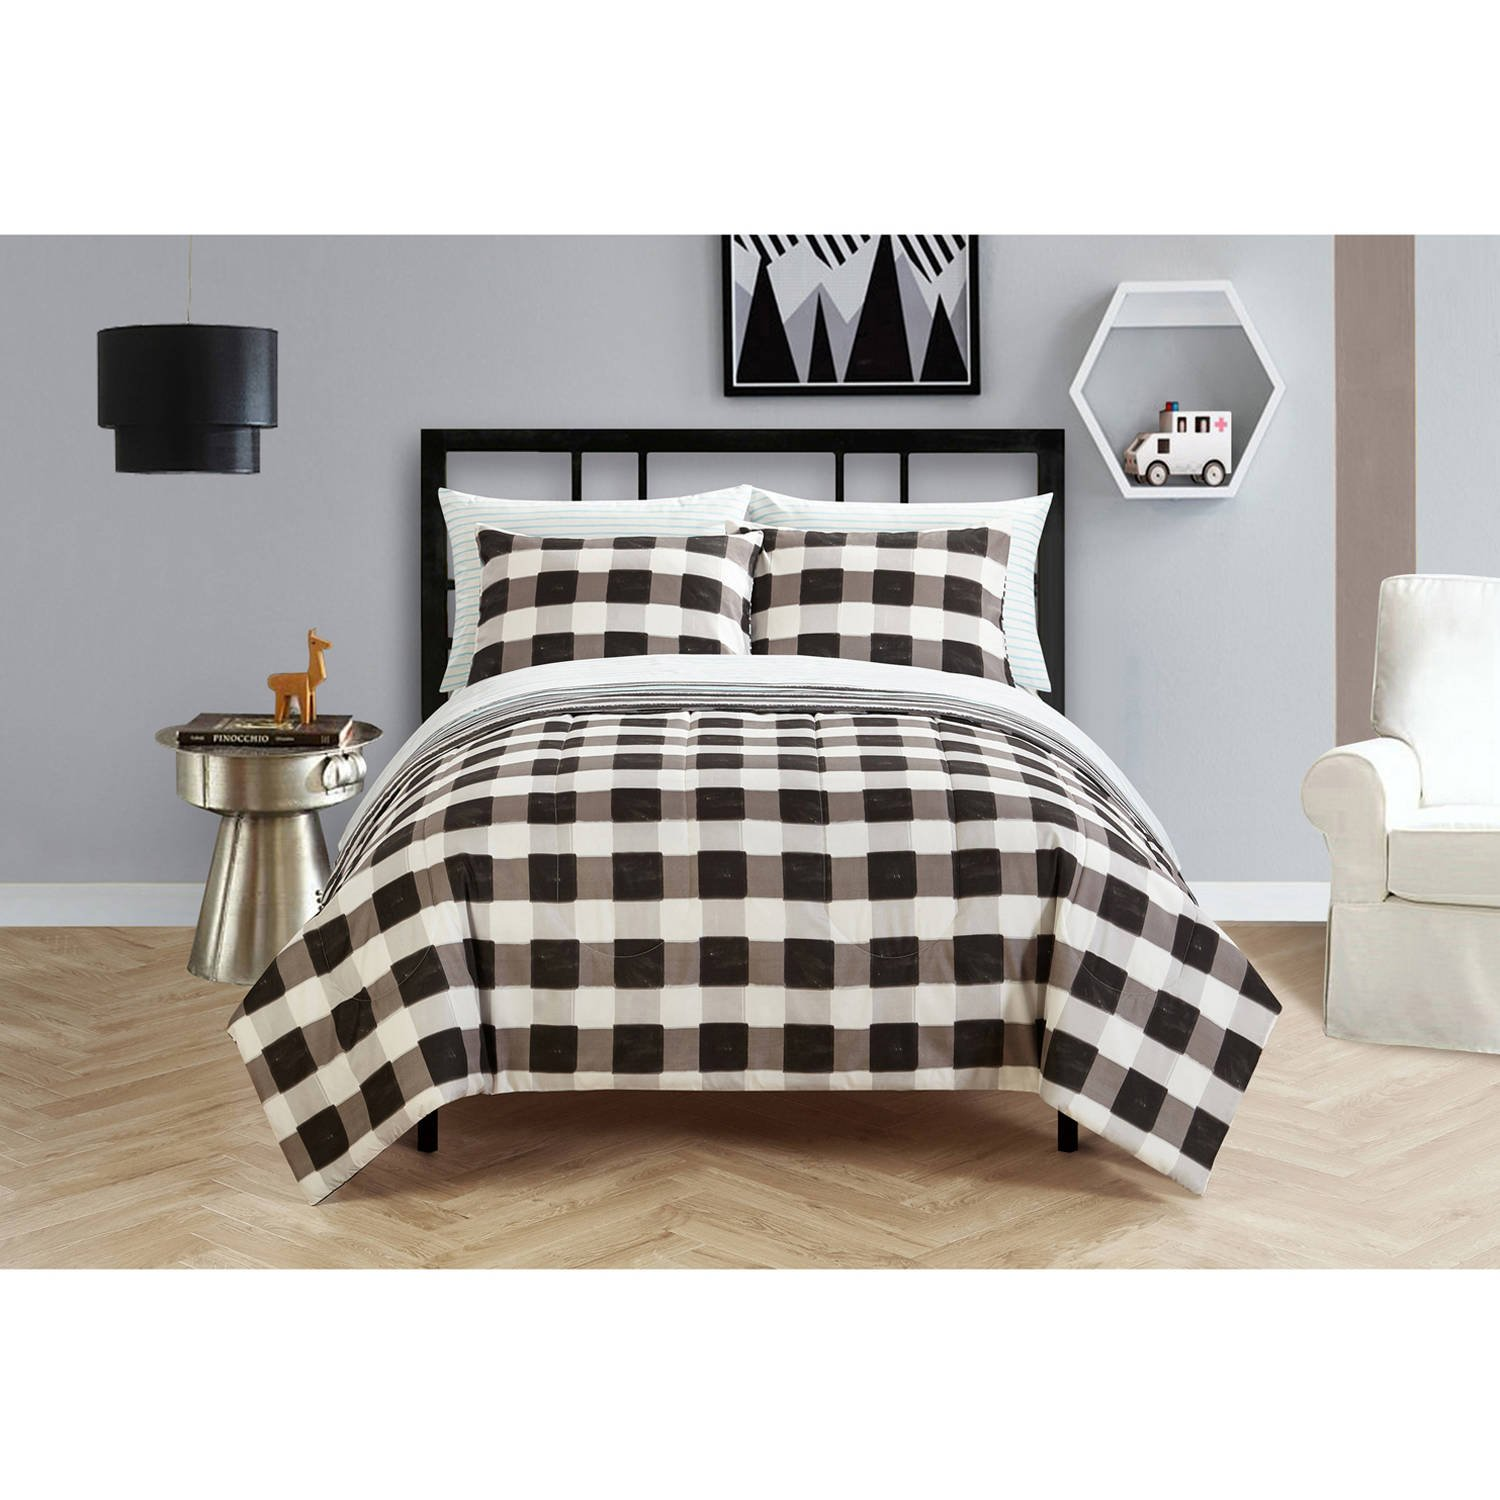 Your Zone Teen Plaid Classic Black and White Stripes Checkered Reversible Bedding Twin/Twin XL Comforter for Boys (5 Piece in a Bag)